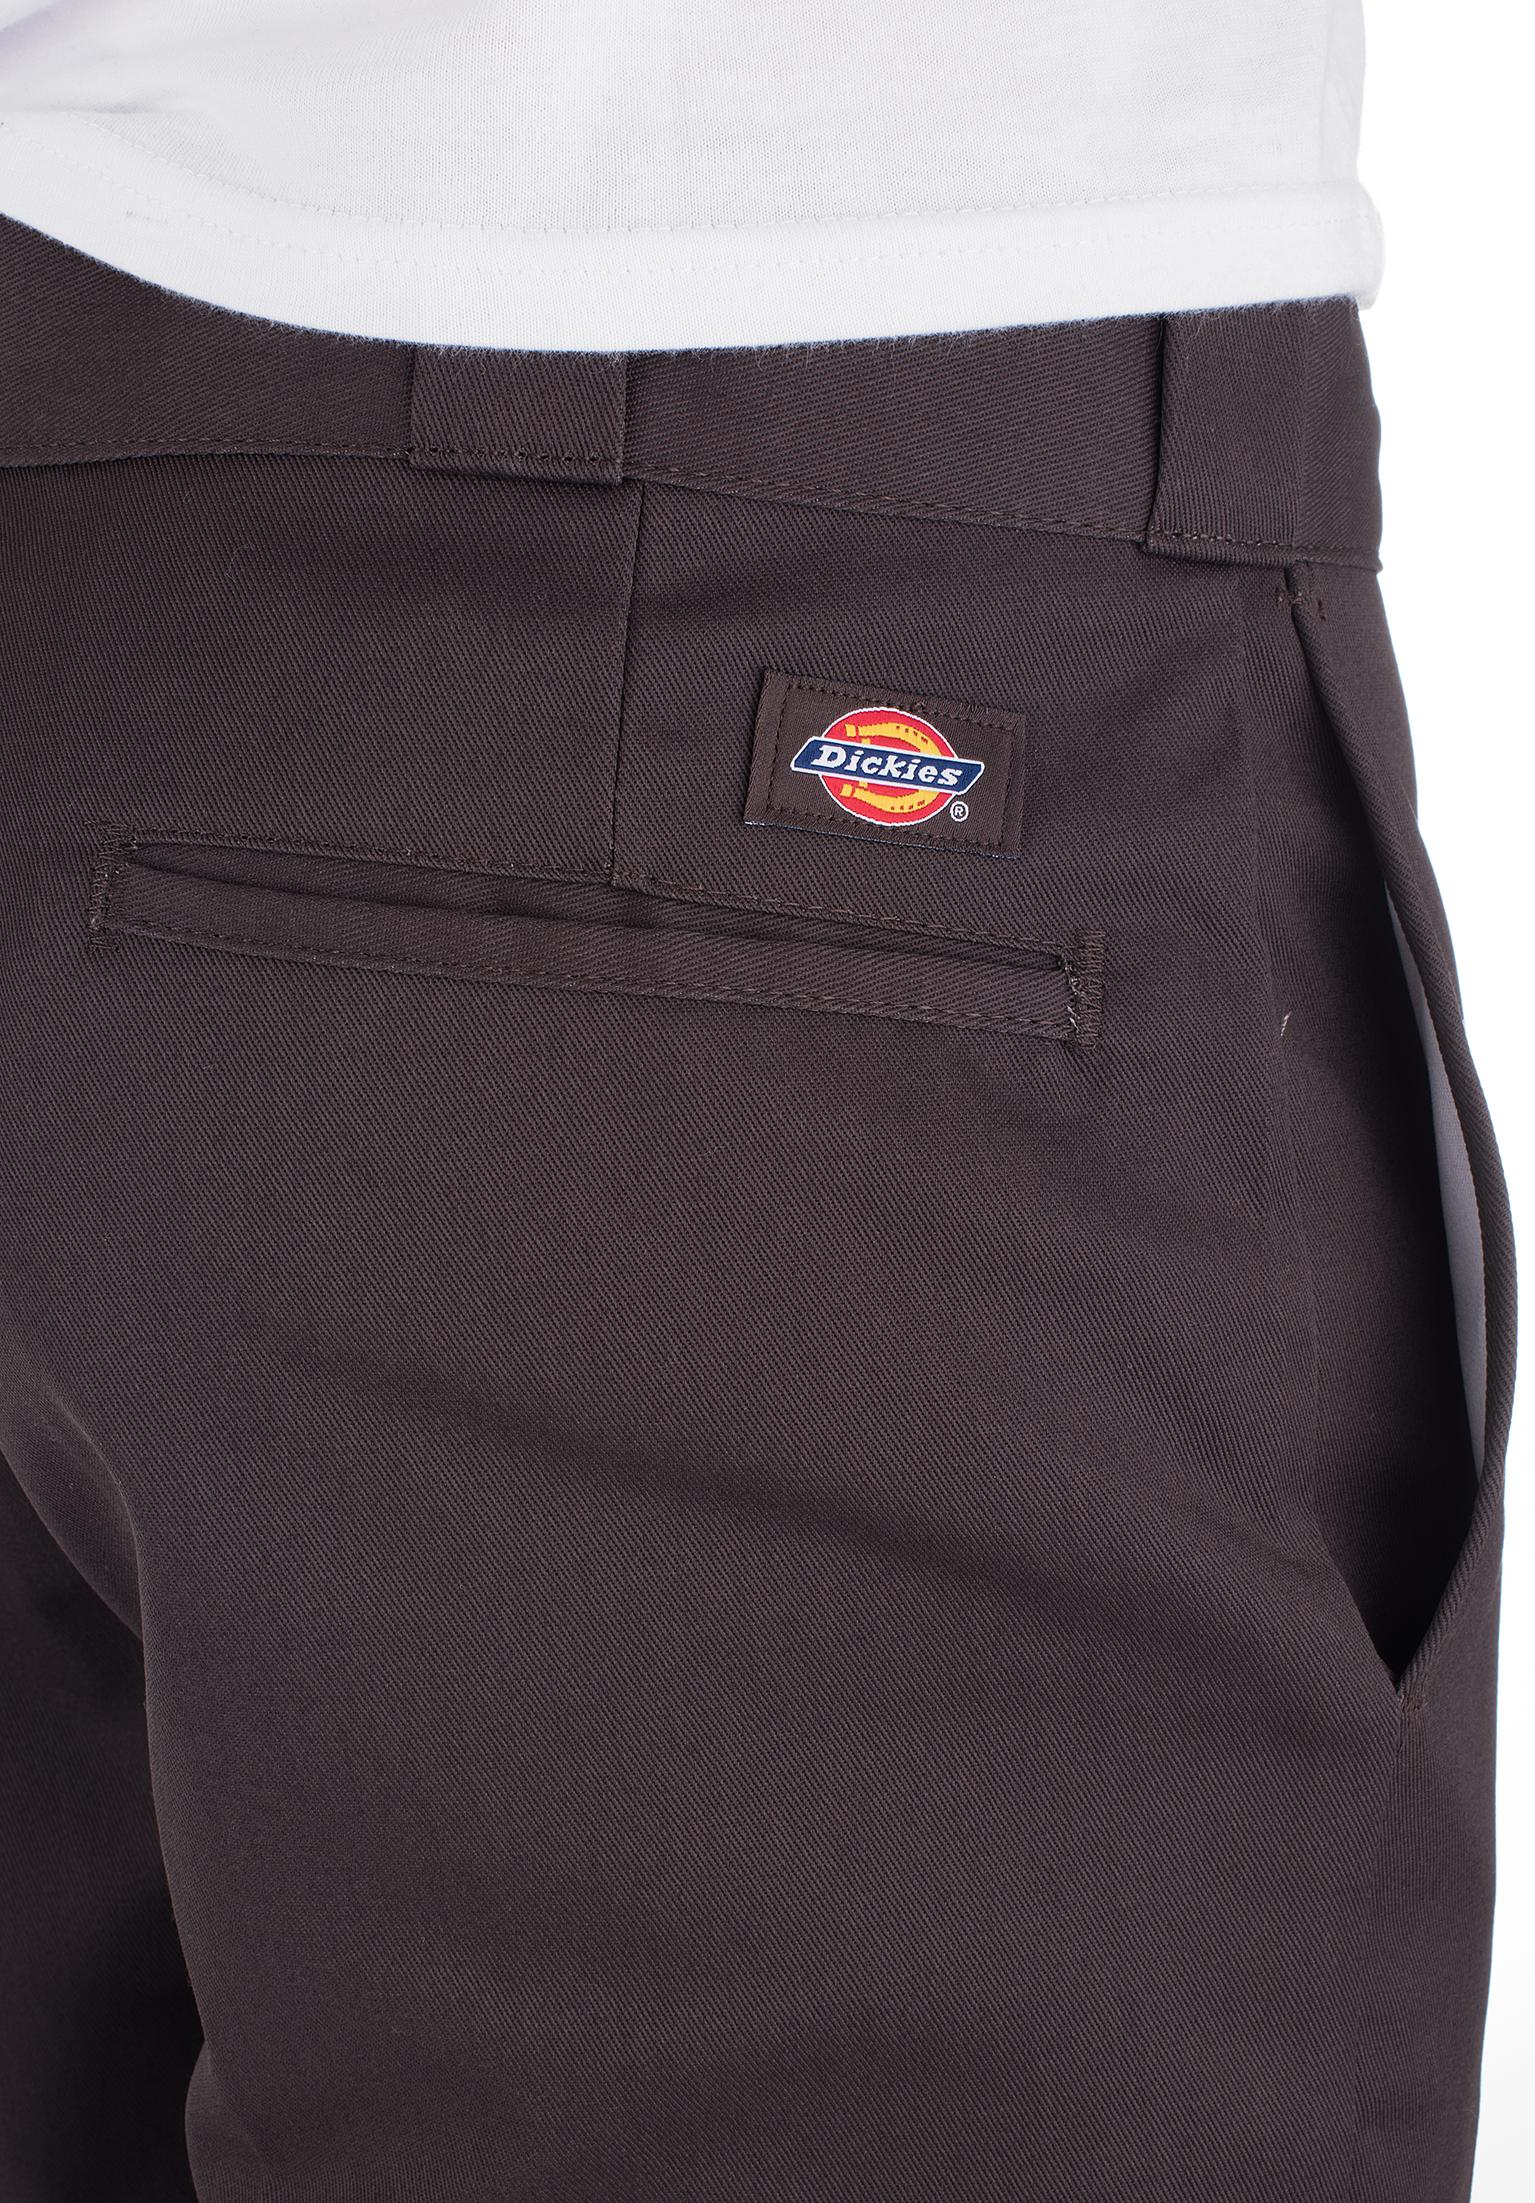 Dickies-Chinos-und-Stoffhosen-Original-874-Work-Pant-darkbrown-Closeup2.jpg